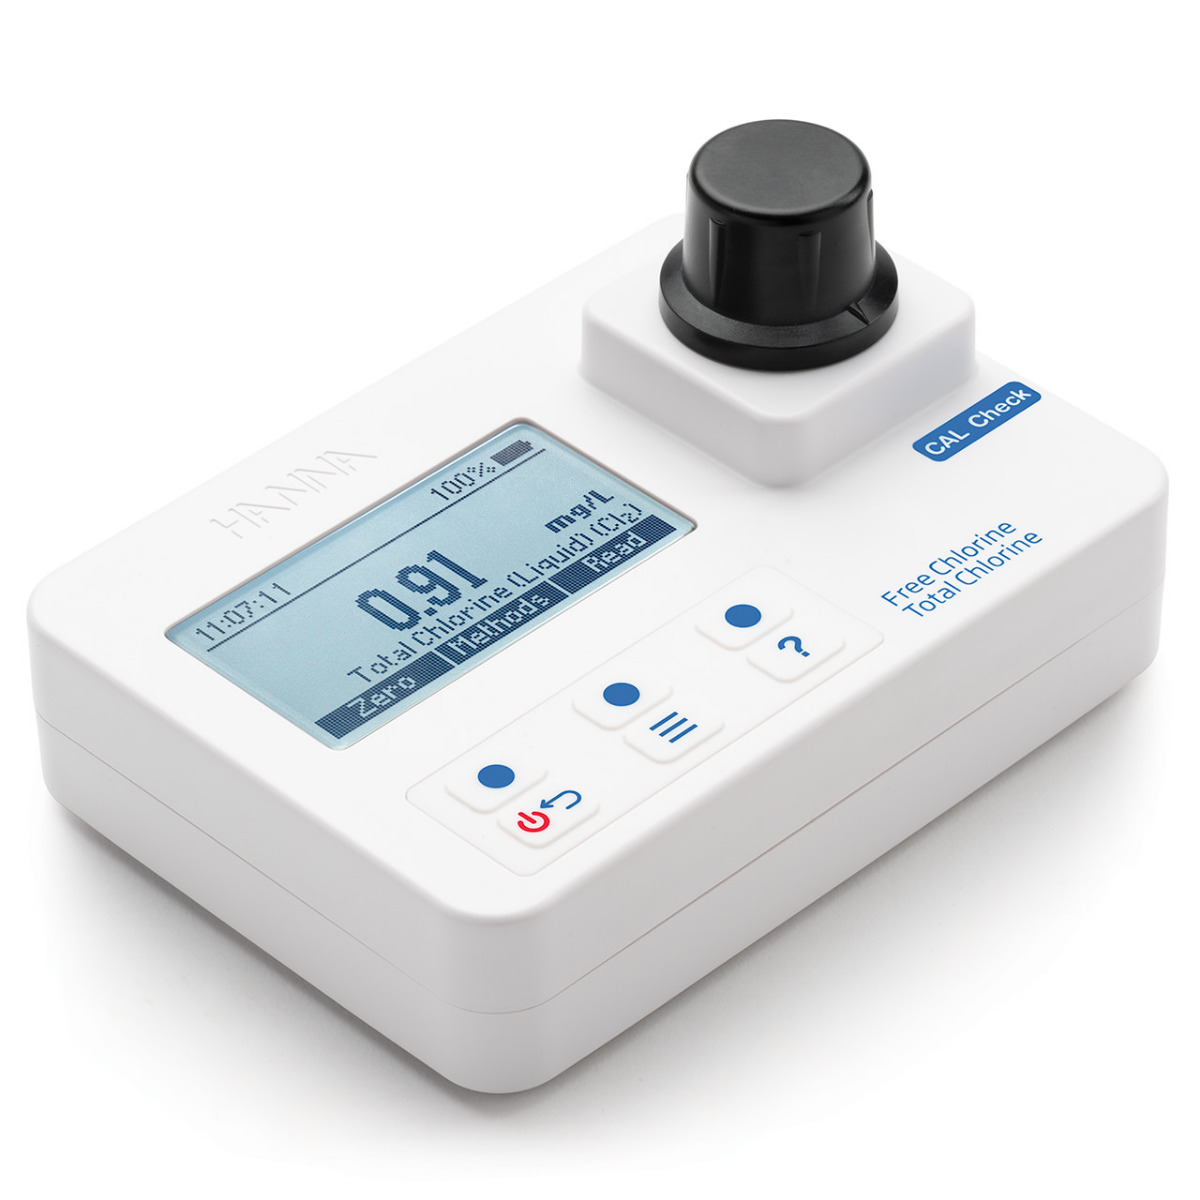 Free and Total Chlorine Portable Photometer with CAL Check - HI97711